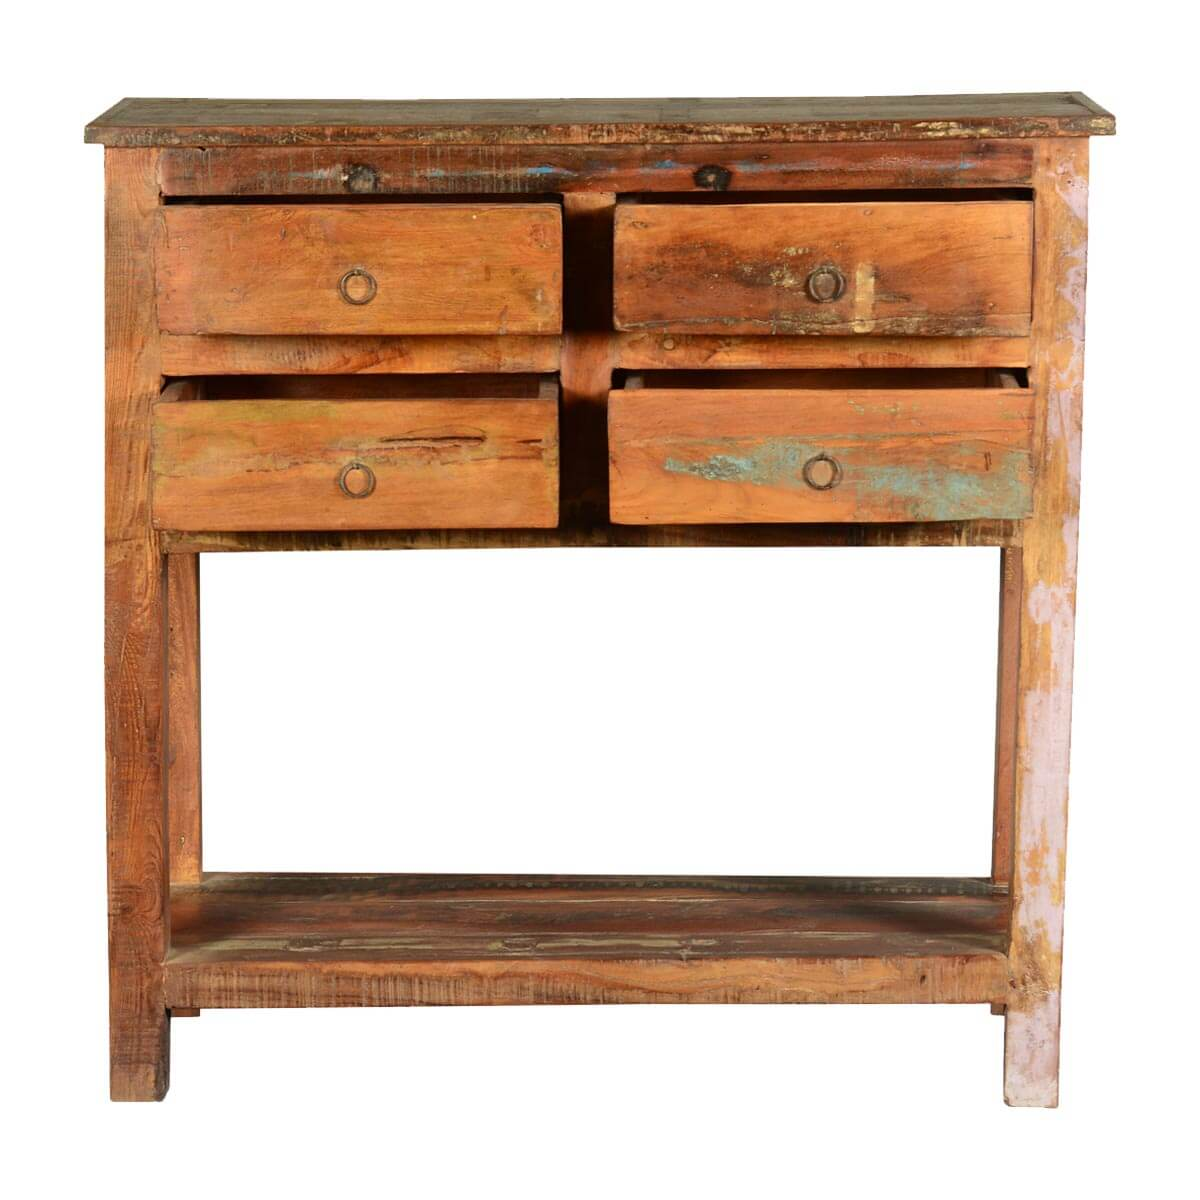 Frontier rustic reclaimed wood hall console table w drawers